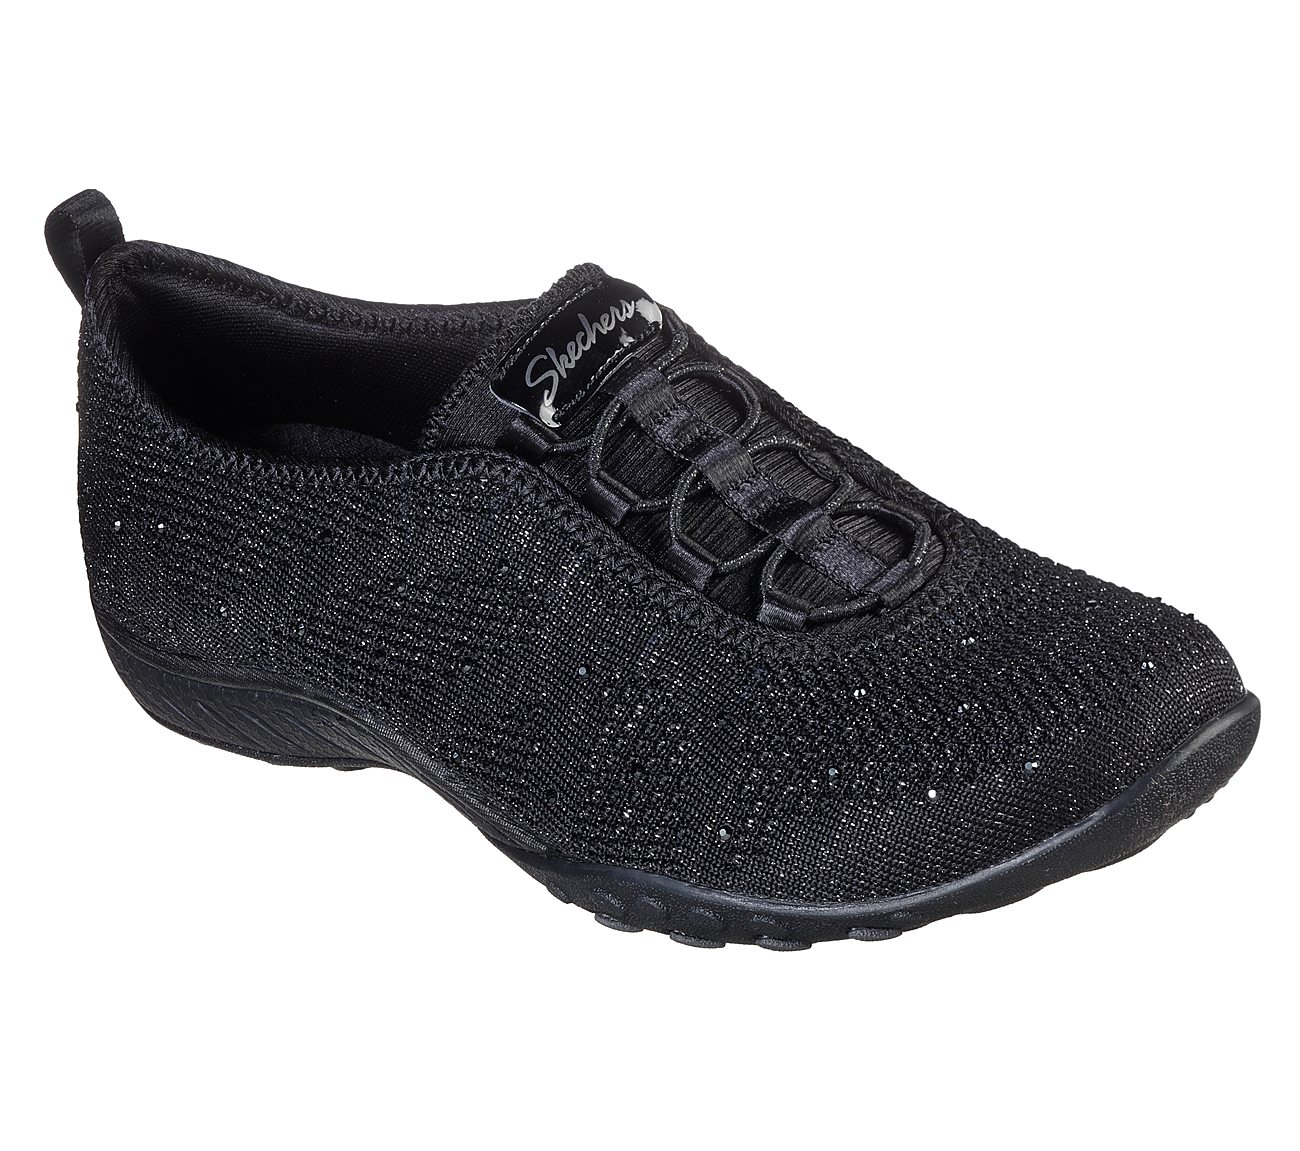 Breathe Easy Relaxed Fit | Skechers